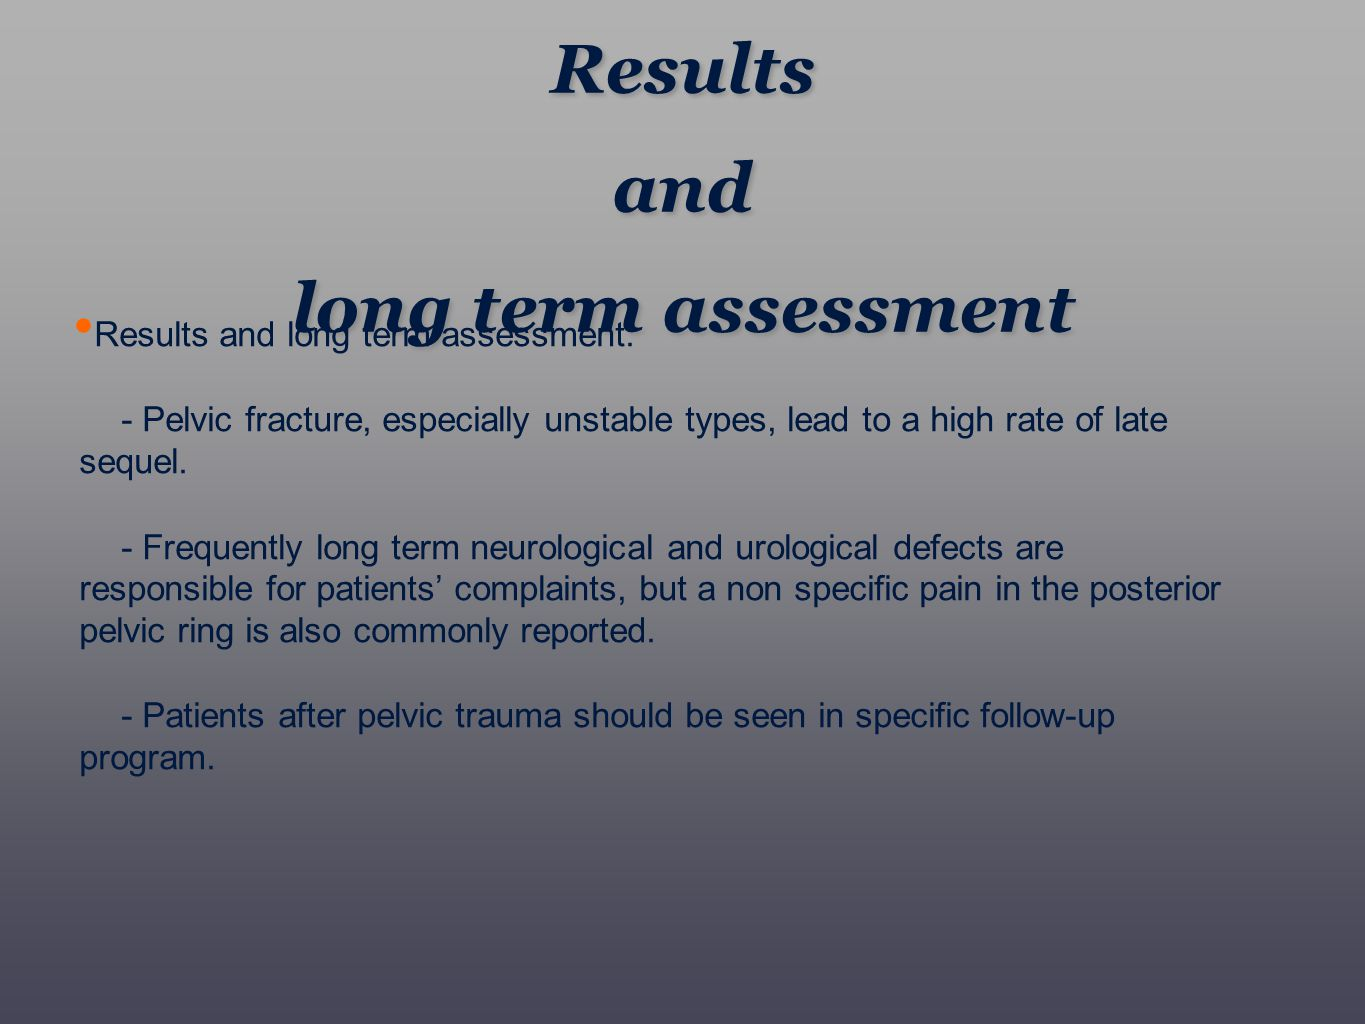 Results and long term assessment